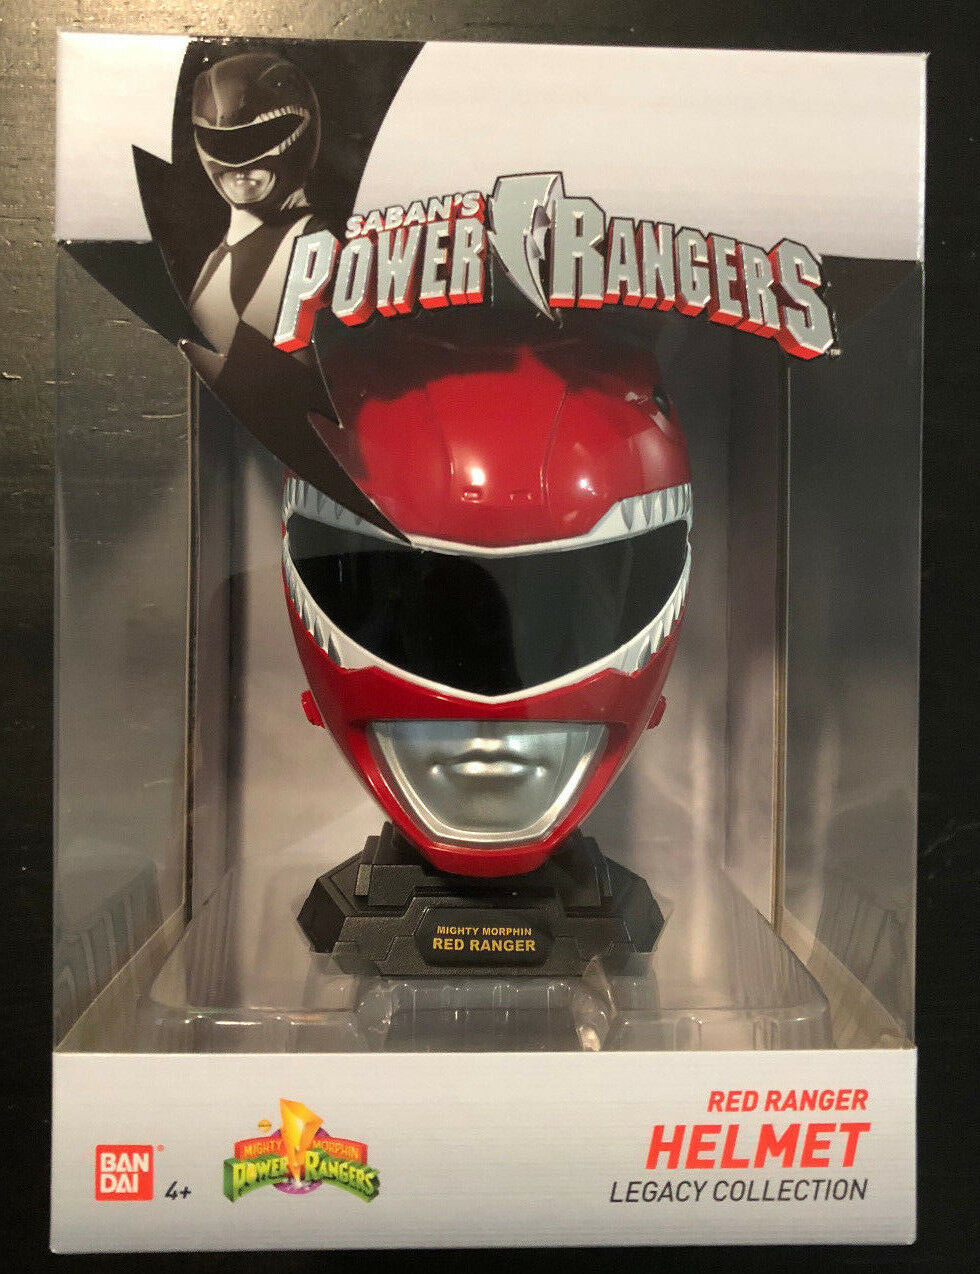 Mighty Morphin Power Rangers Ranger Rojo herojoados casco Mini 1 4 Jason Mighty Morphin Power Rangers 2018